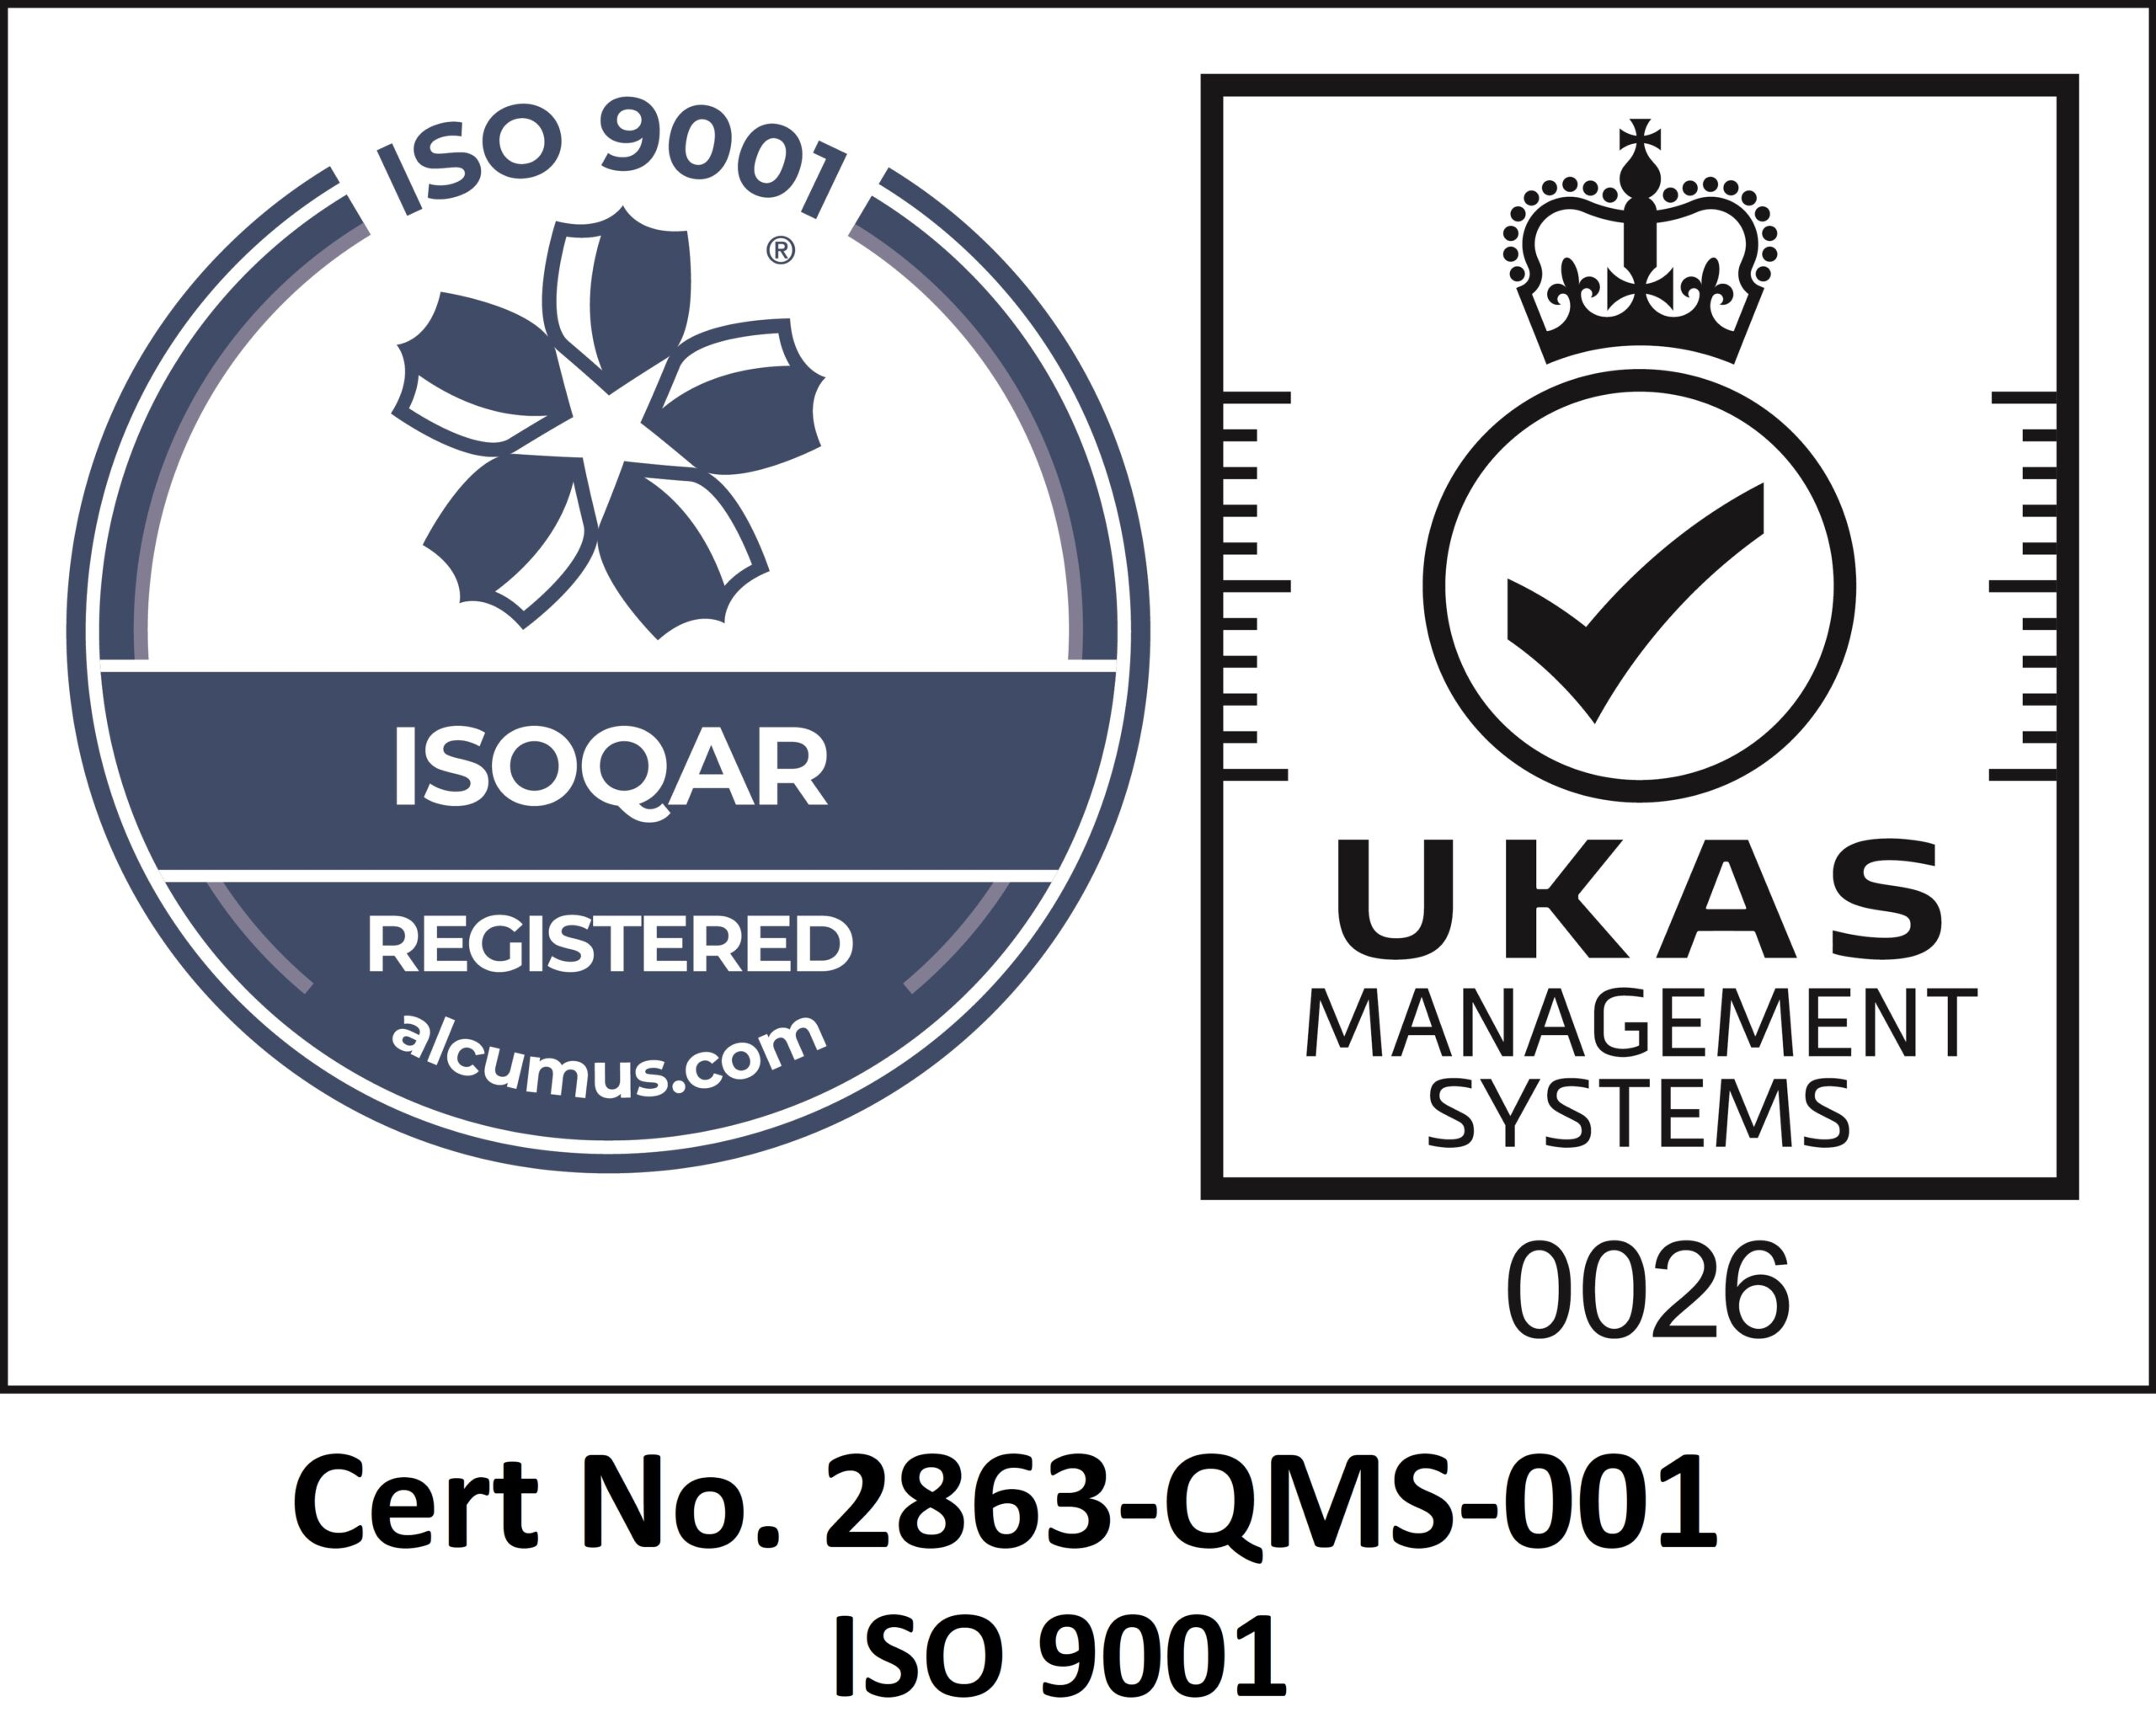 UKAS-ISO9001-Mark-cl-27_CMYK